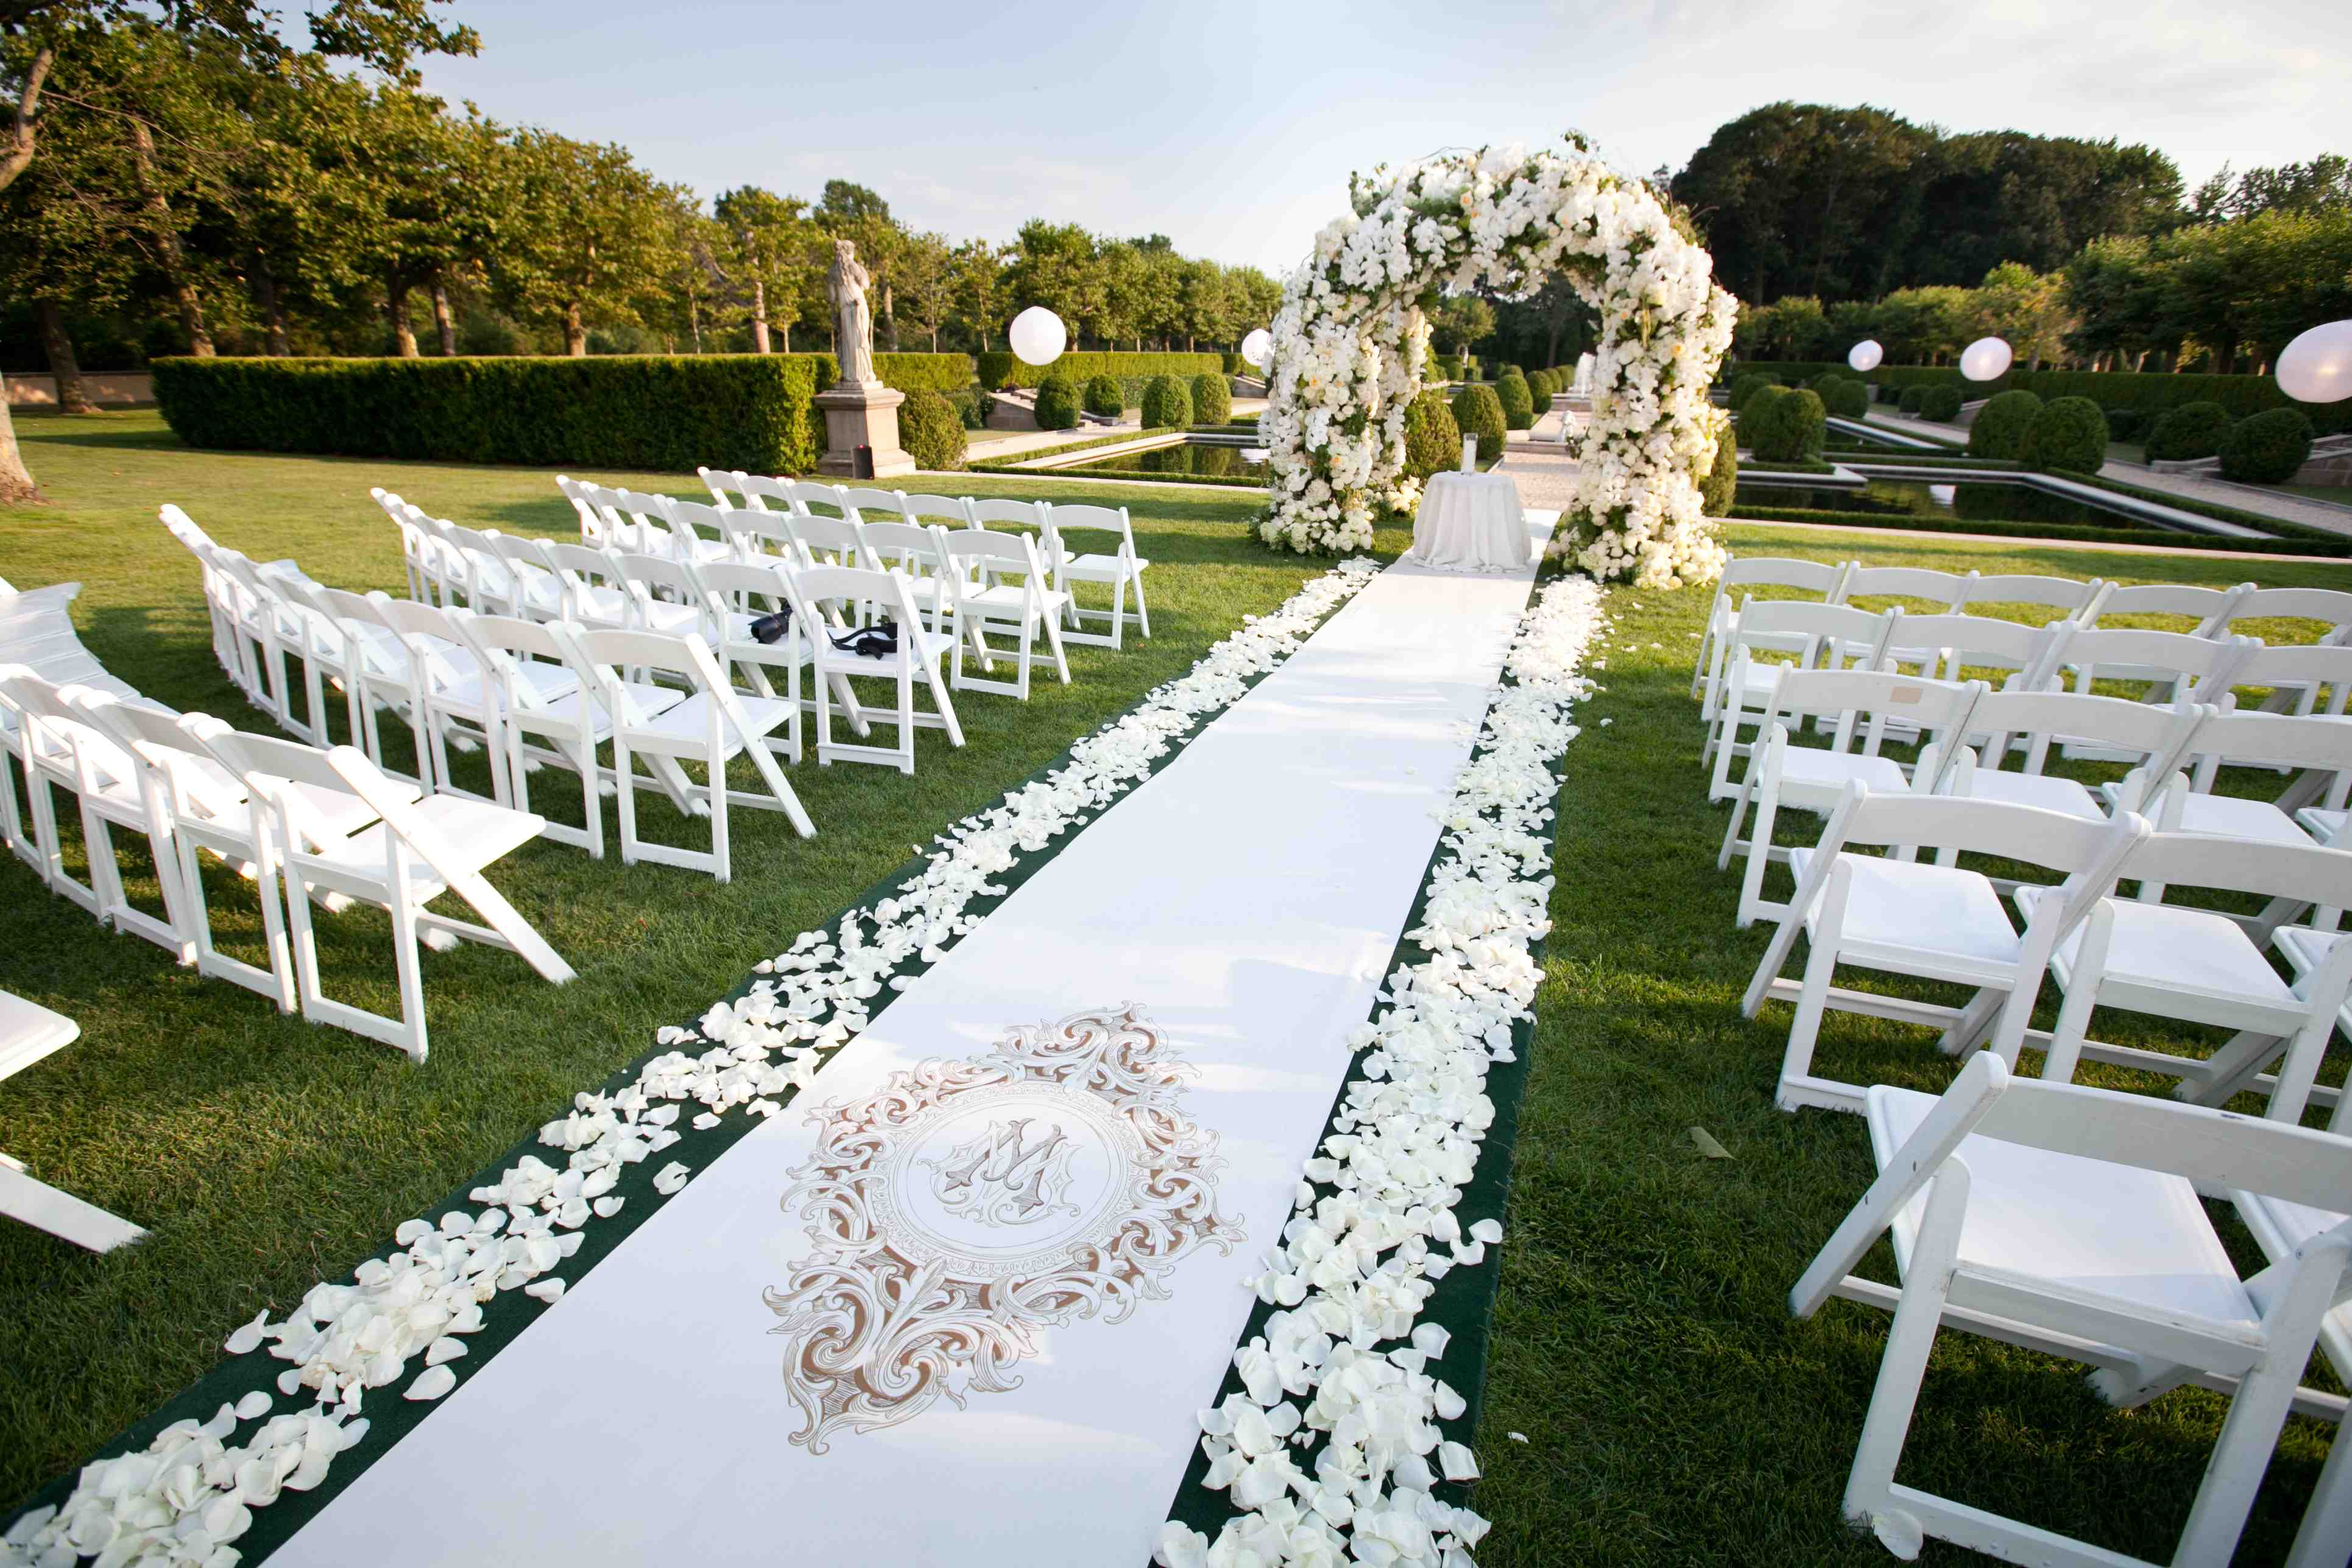 Outdoor Wedding Ideas: Tips From The Experts